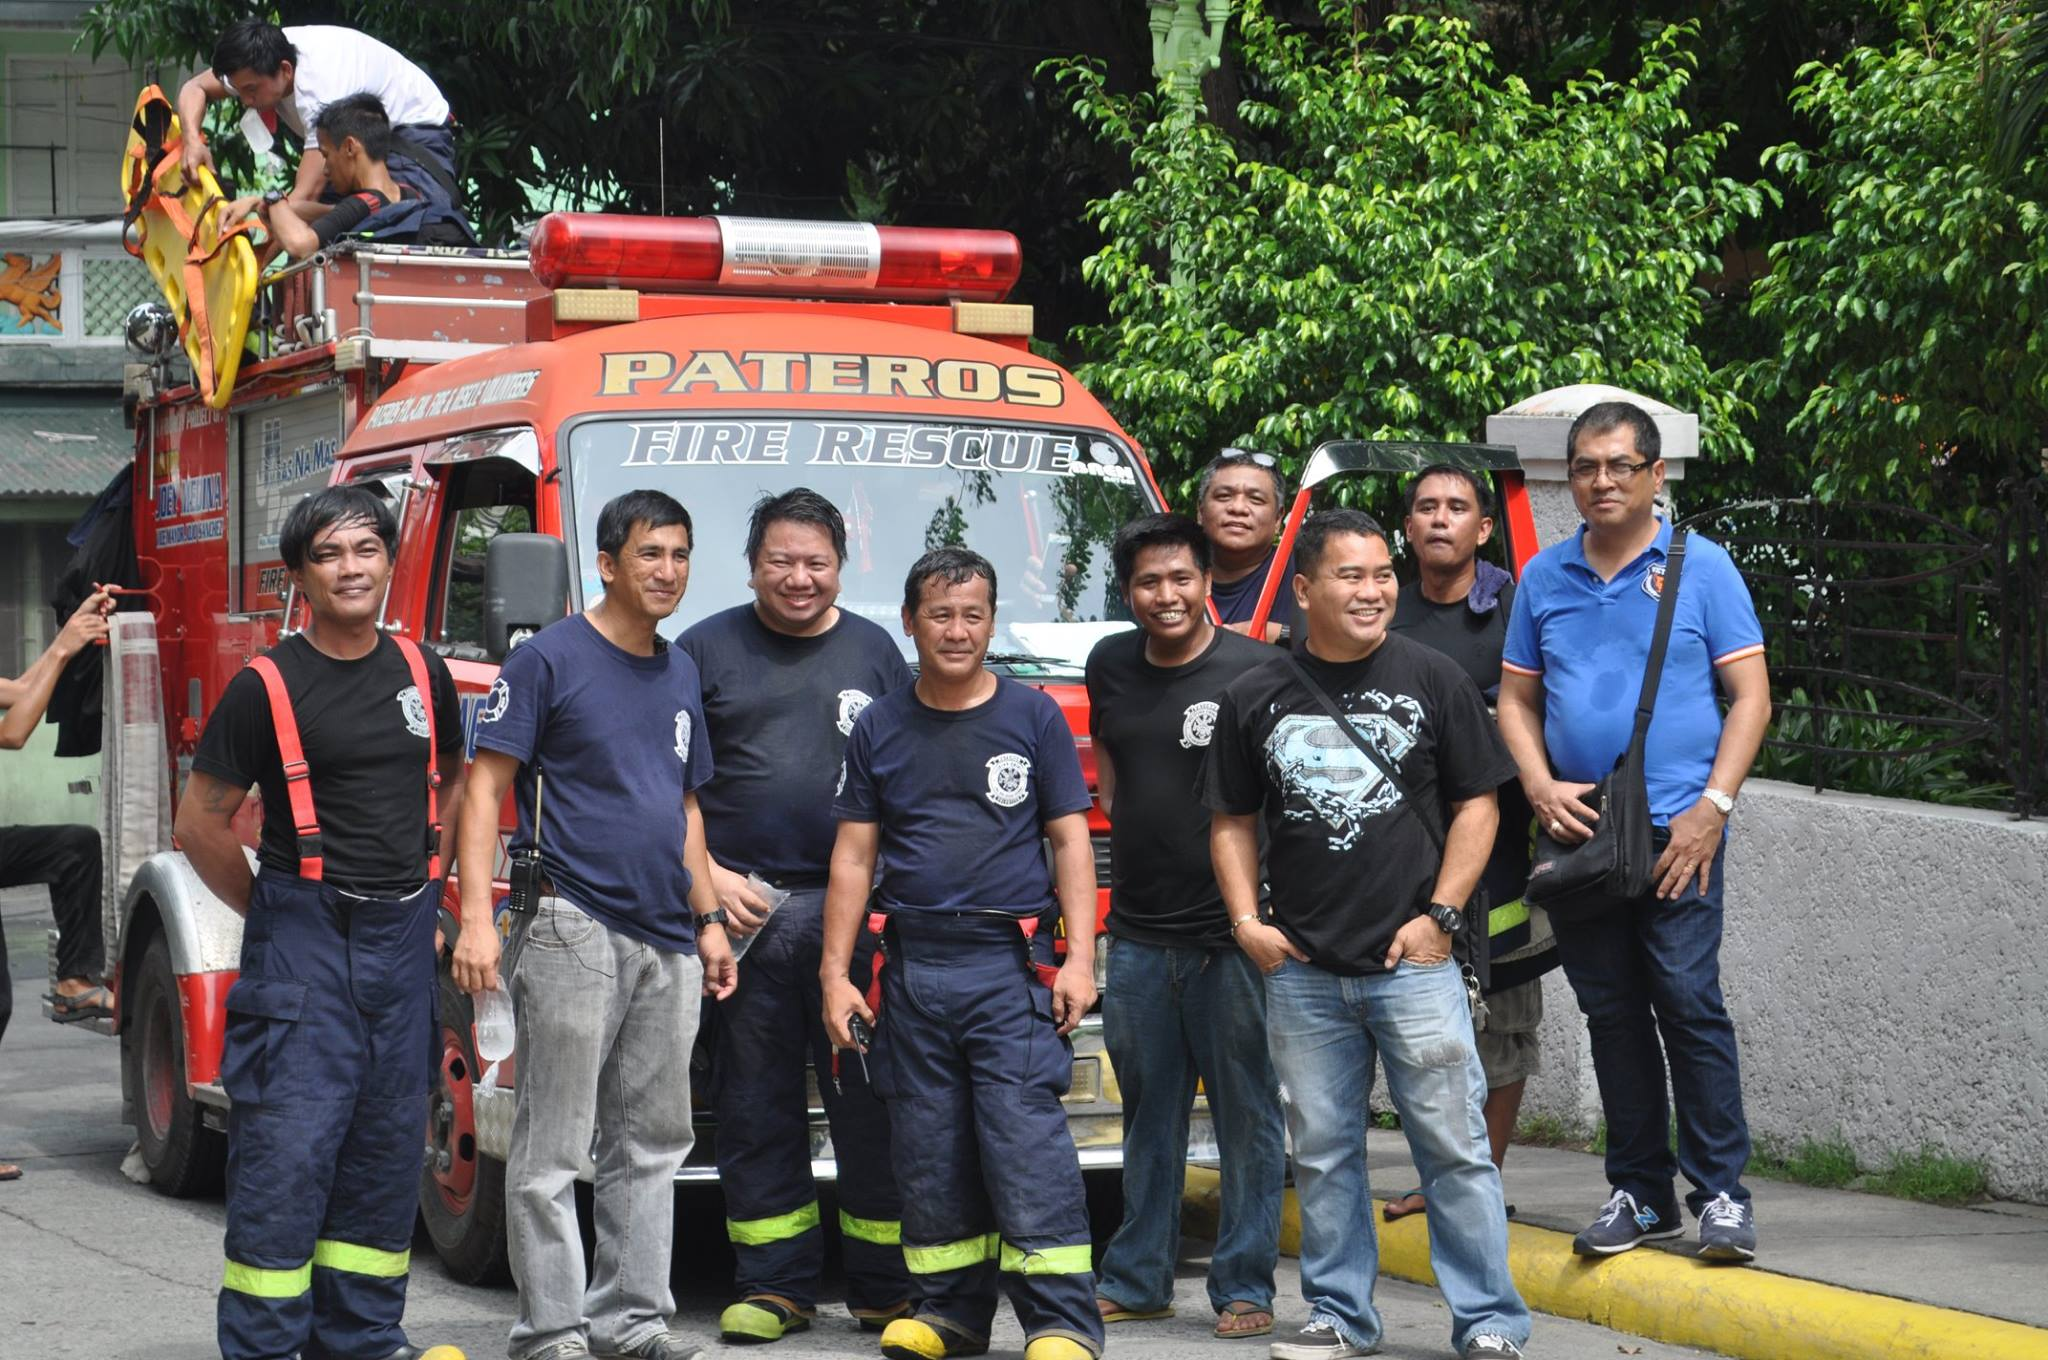 Pateros Volunteer Fire & Rescue Brigade from Philippines - 10th Year Anniversary | Emergency Live 4